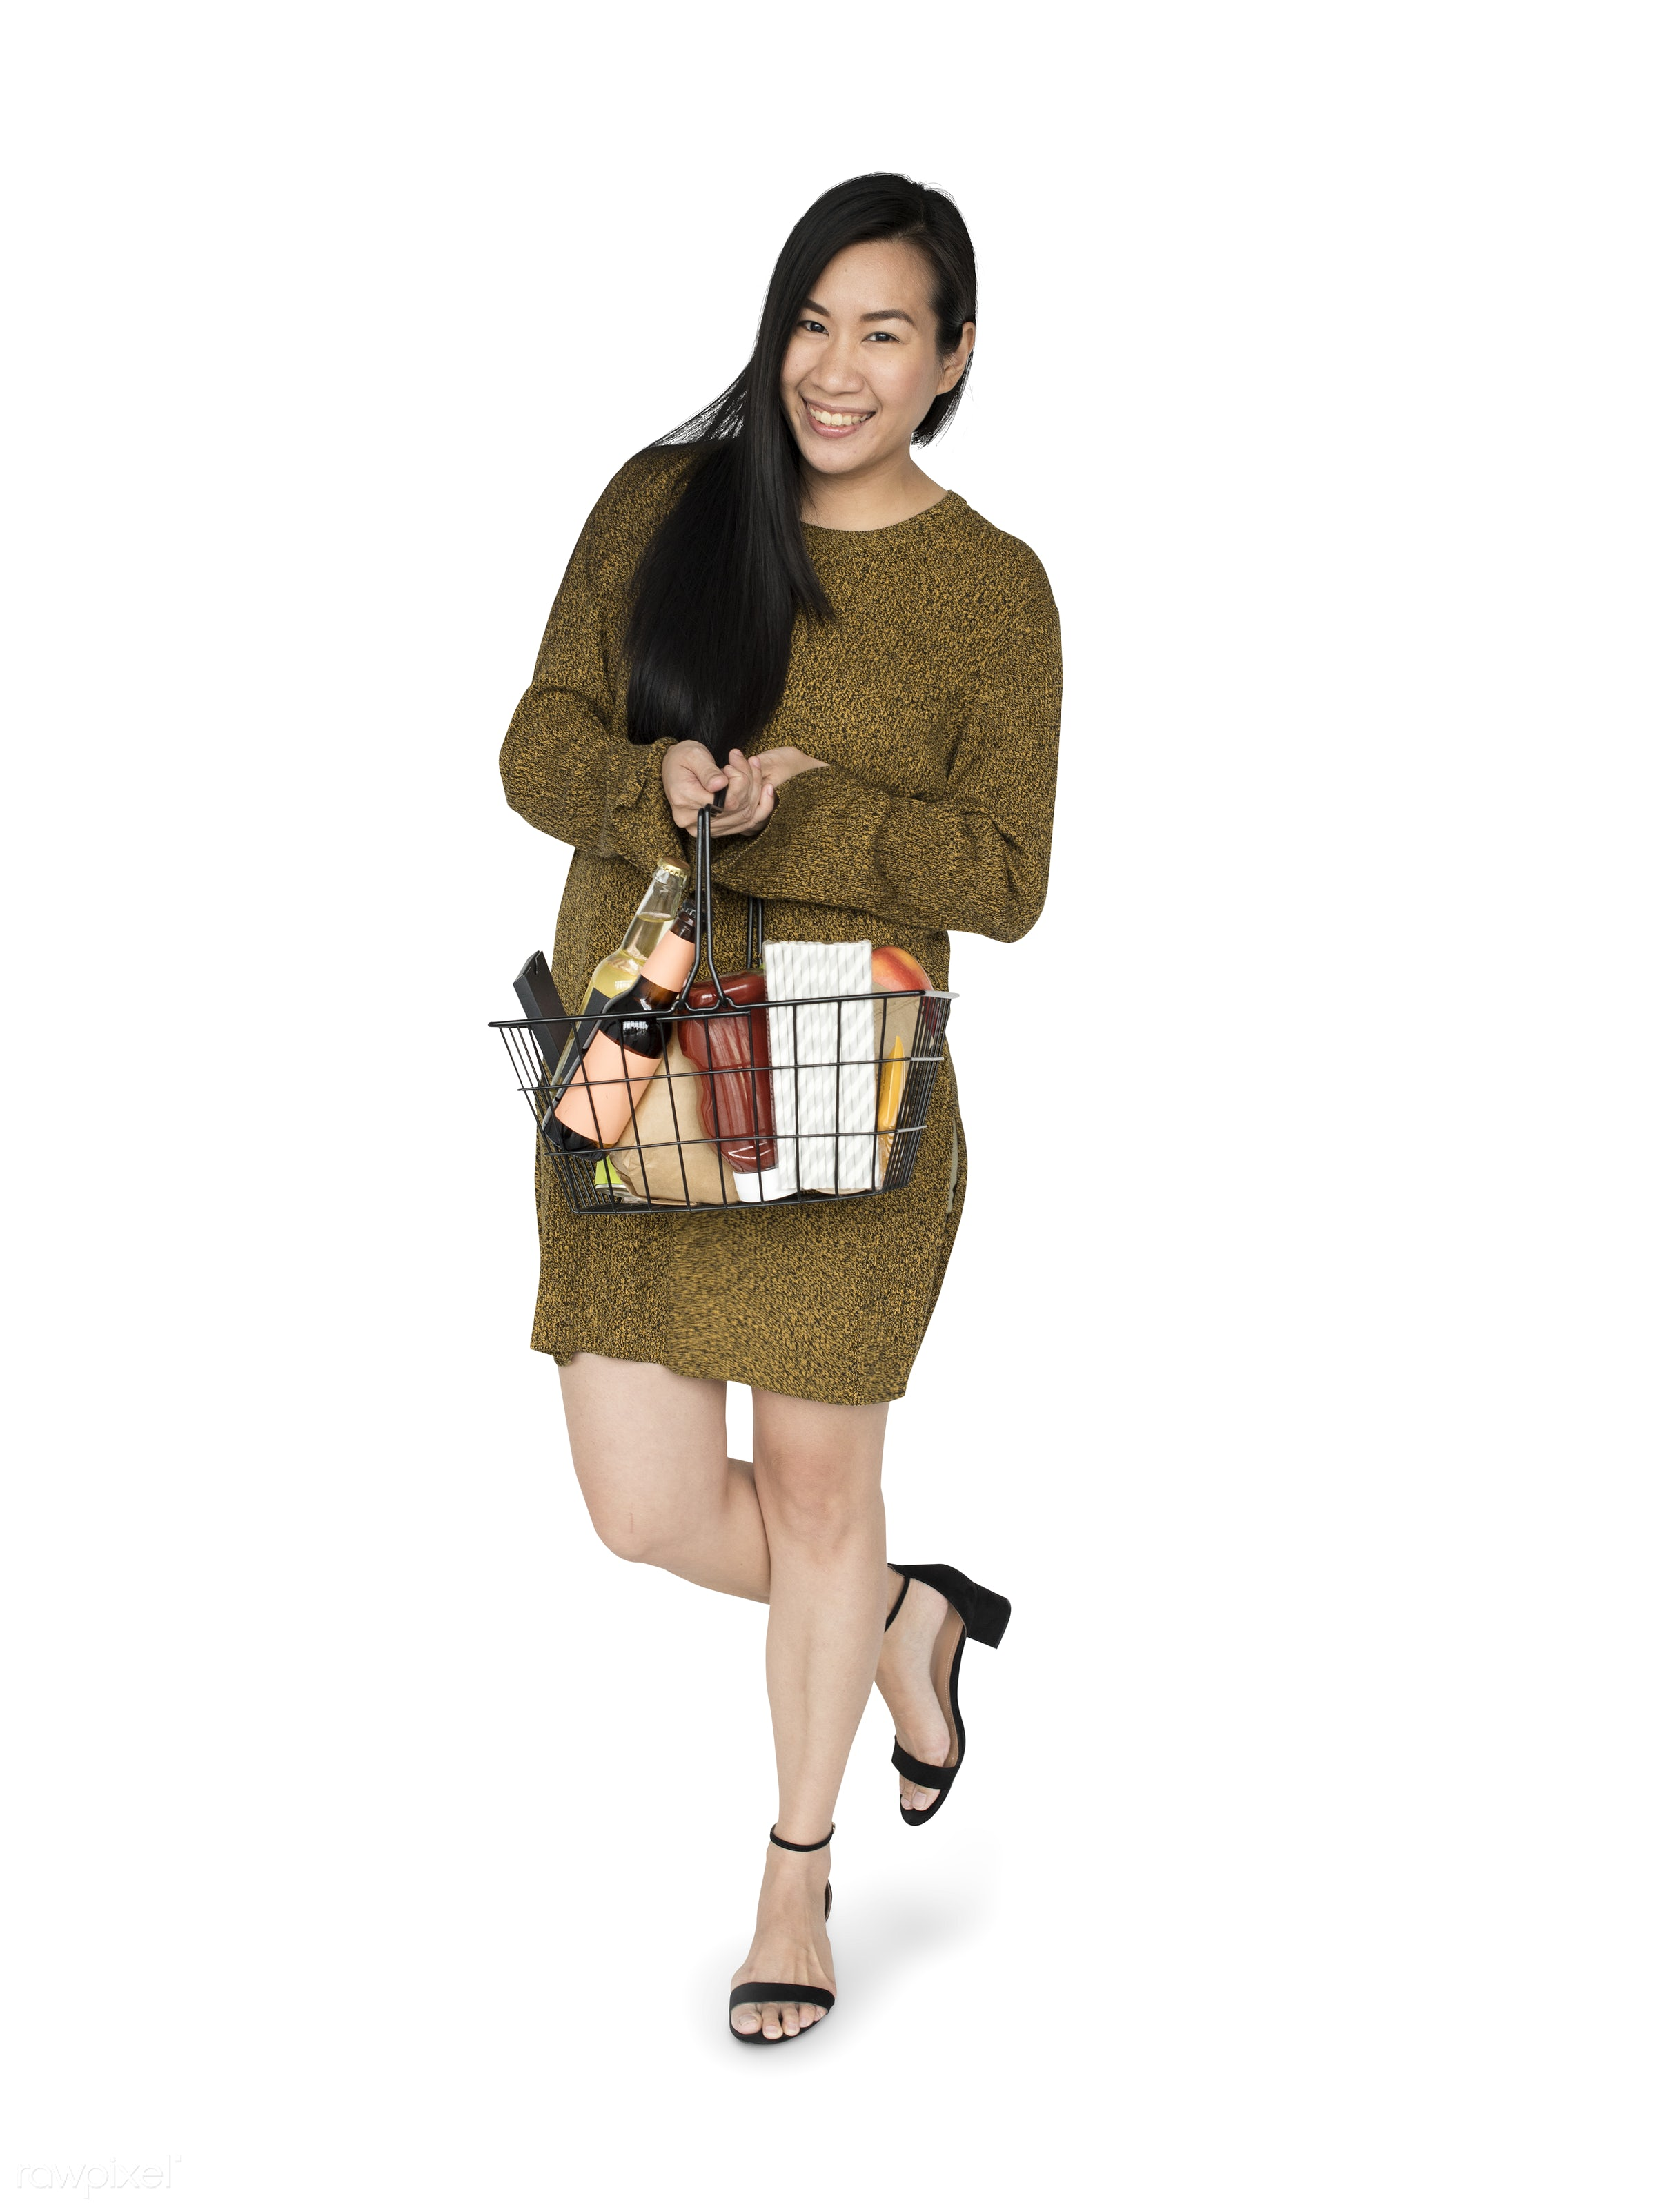 studio, expression, grocery, person, full length, merchandise, store, holding, customer, consumer, race, people, asian,...